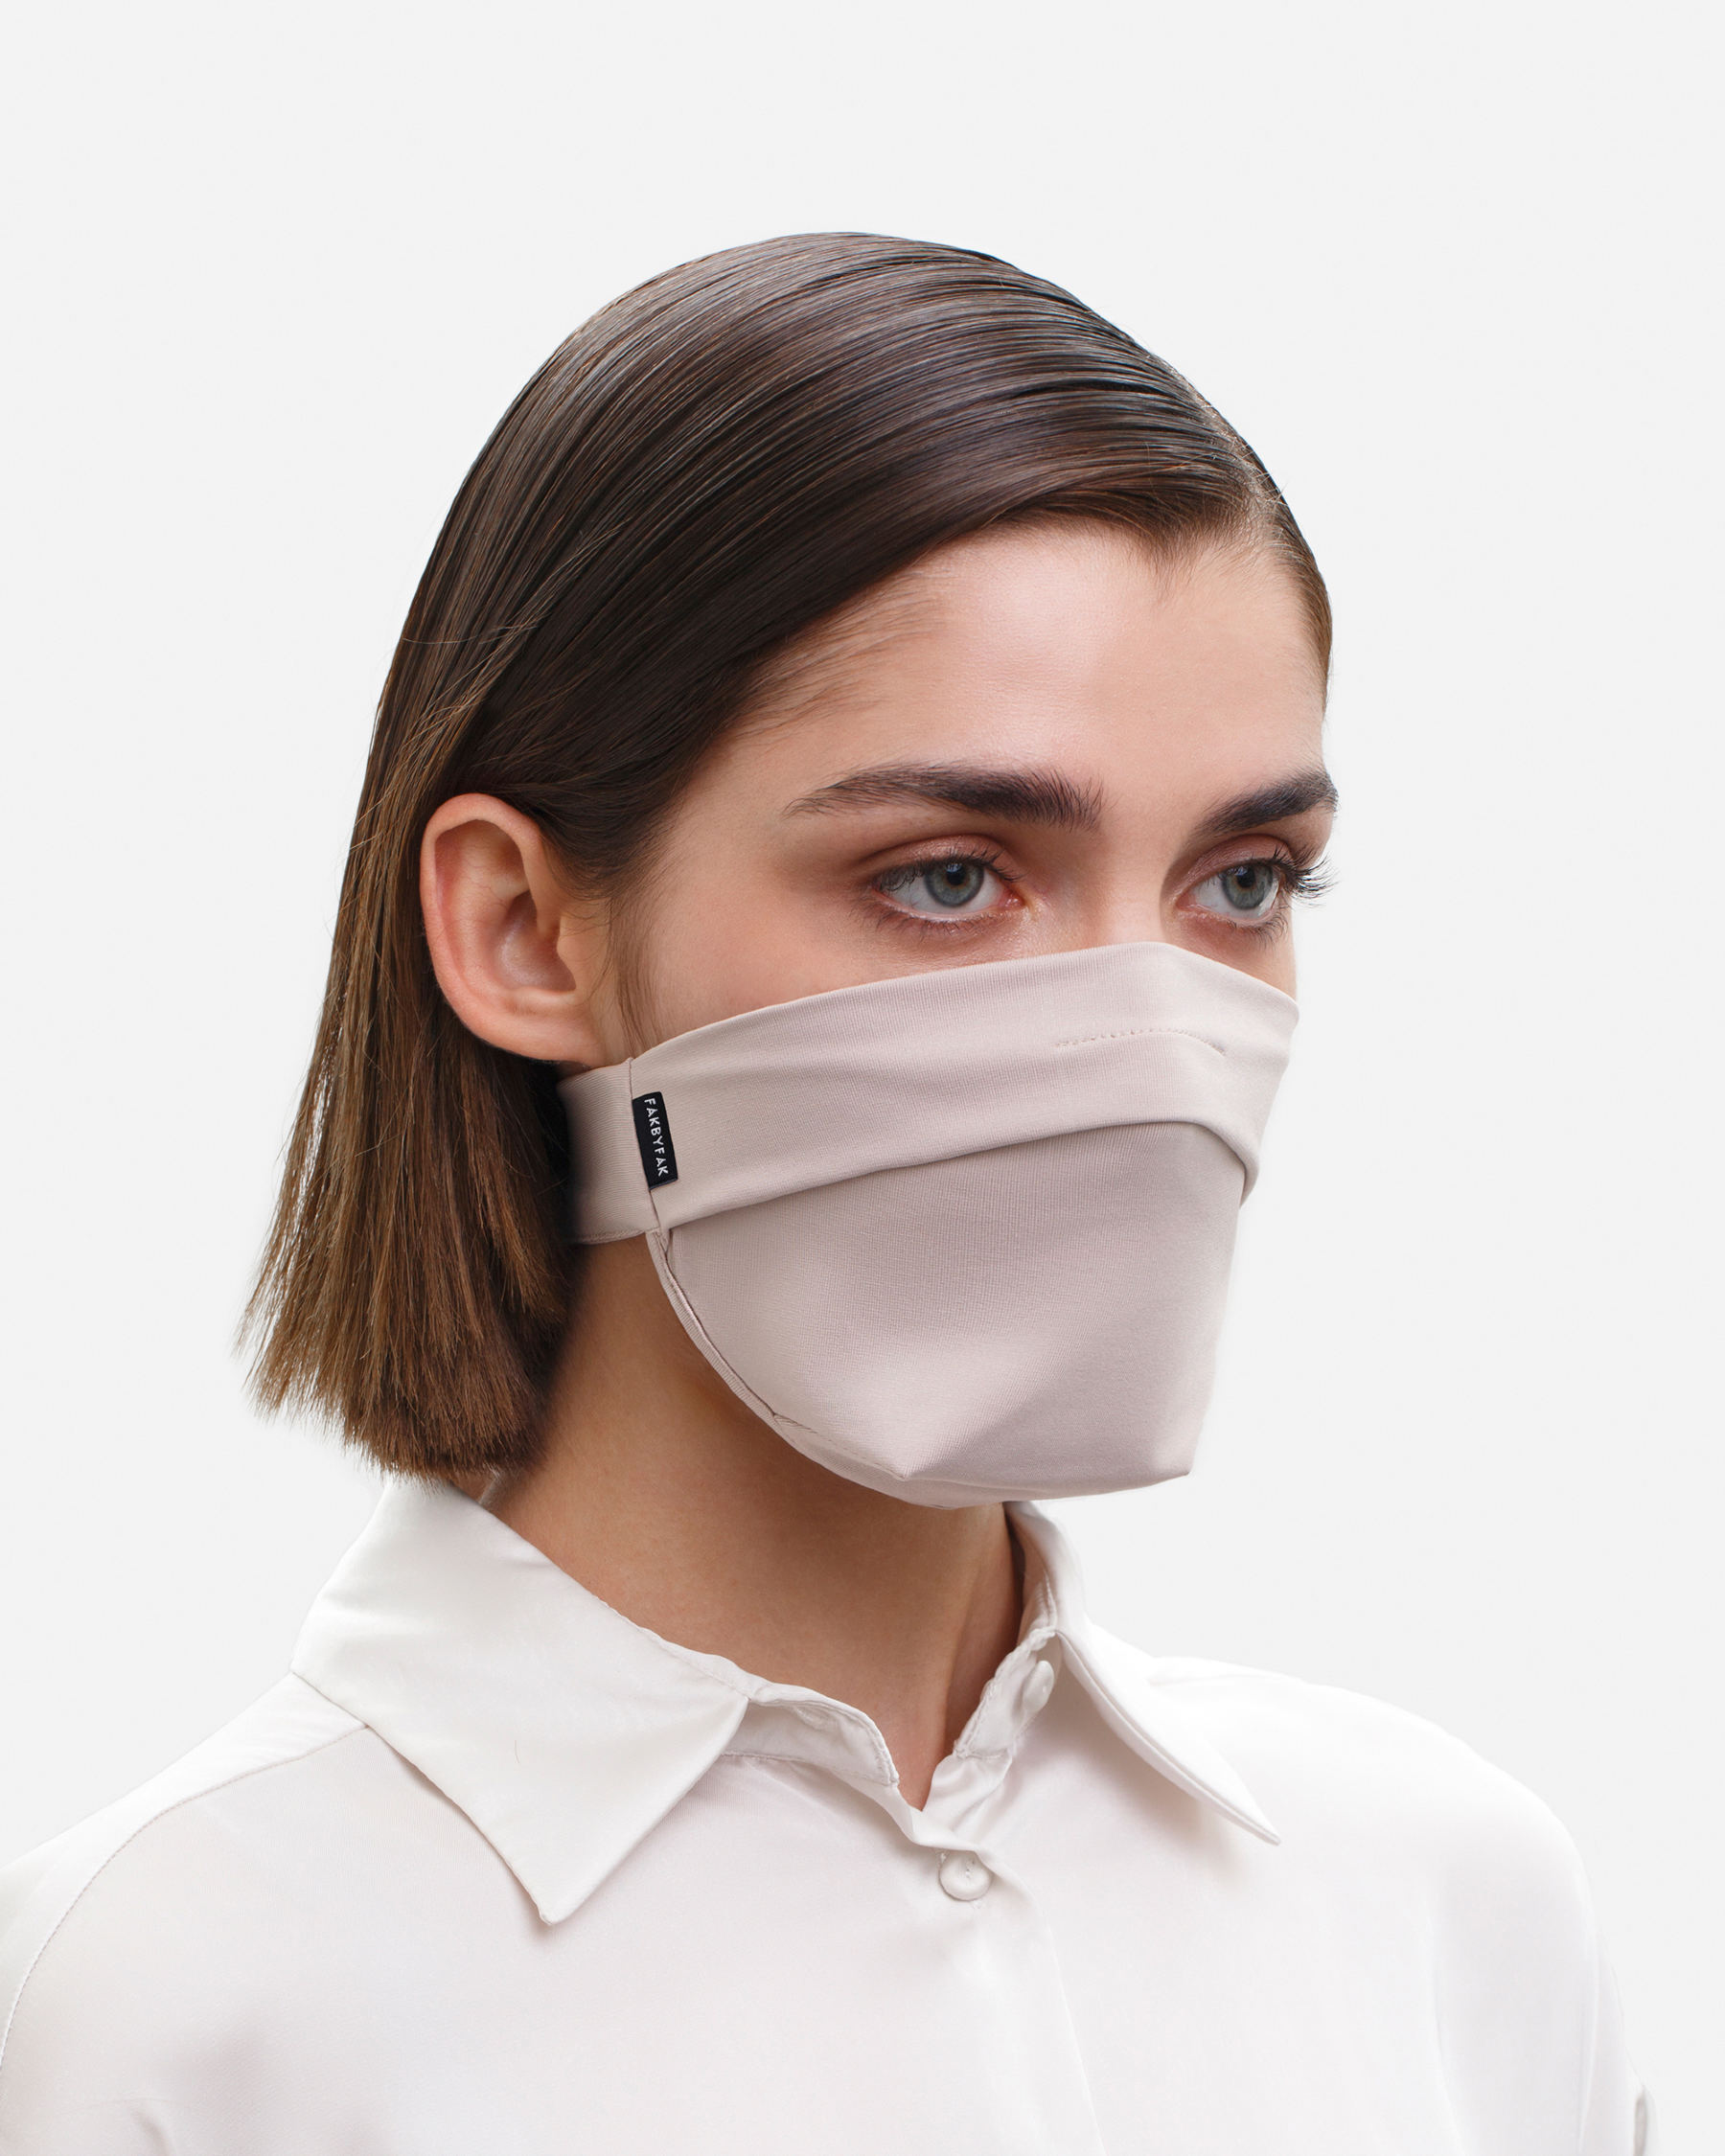 FAKBYFAK  The Vega. Ear Strap-Free High-End Protective Antibacterial (ATB-UV+) Face Mask. Beige Code: FBF-42101-02